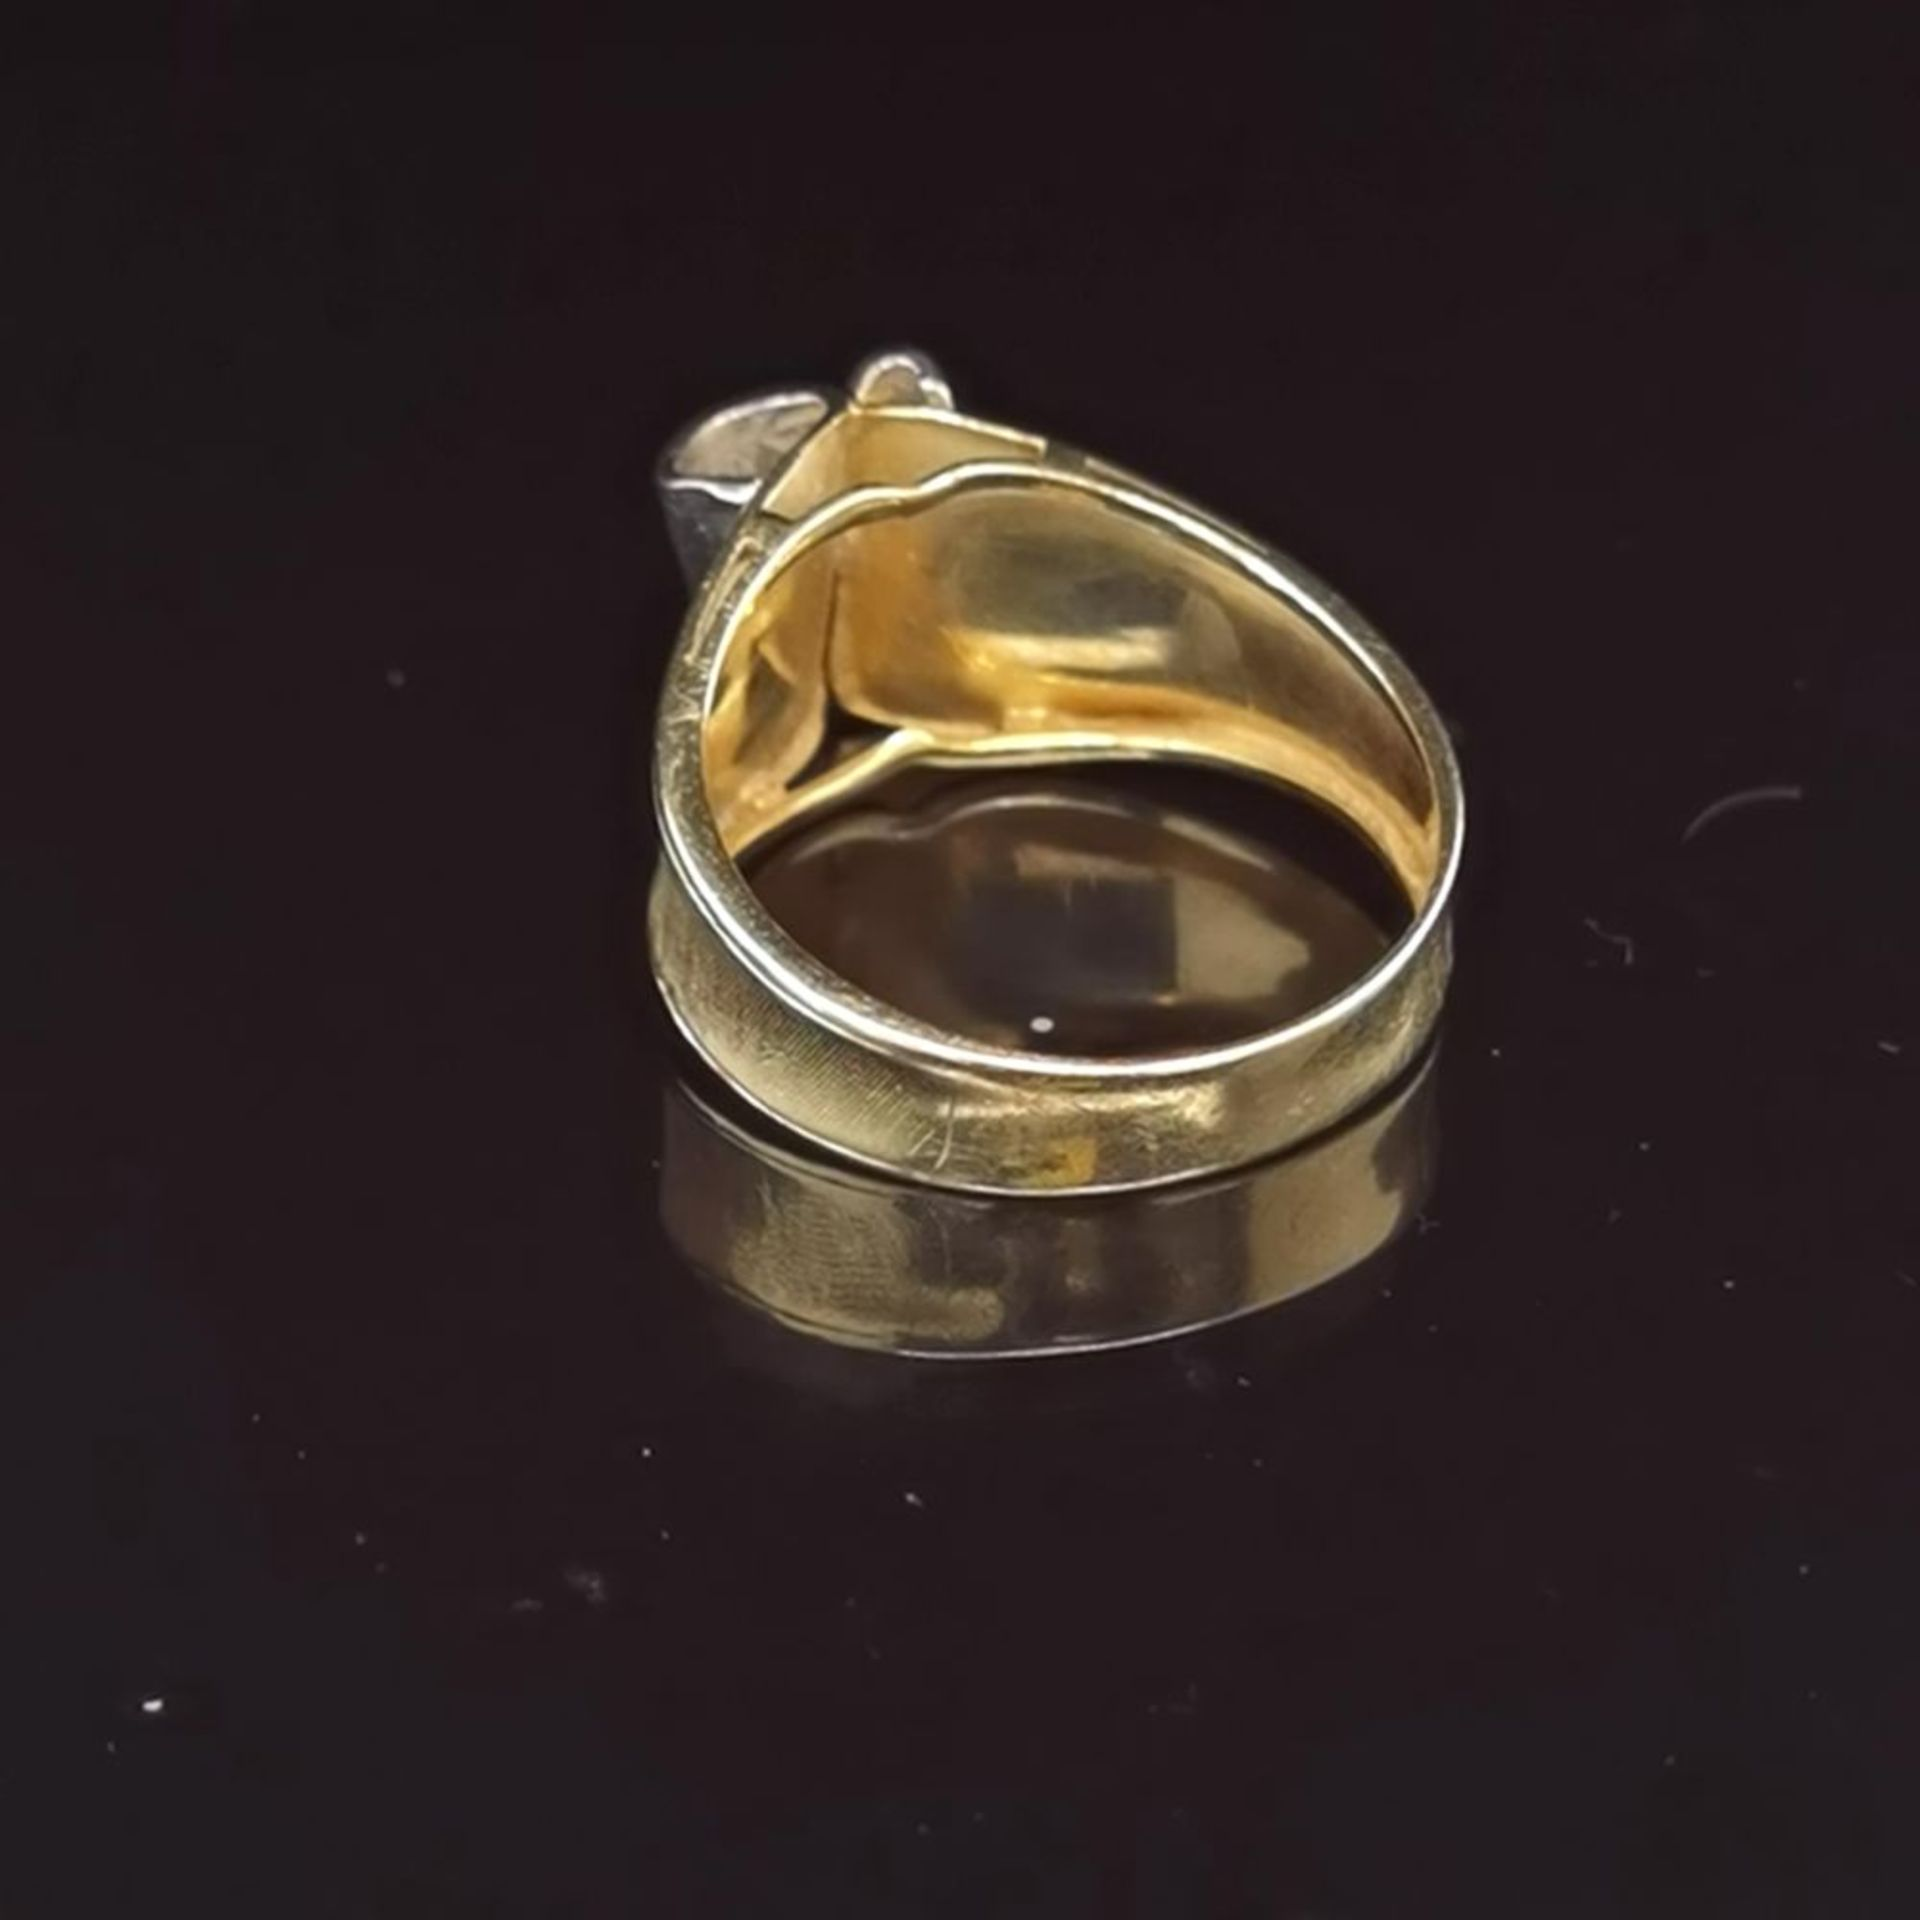 Diamant-Ring, 585 Gold 5,4 - Image 3 of 3